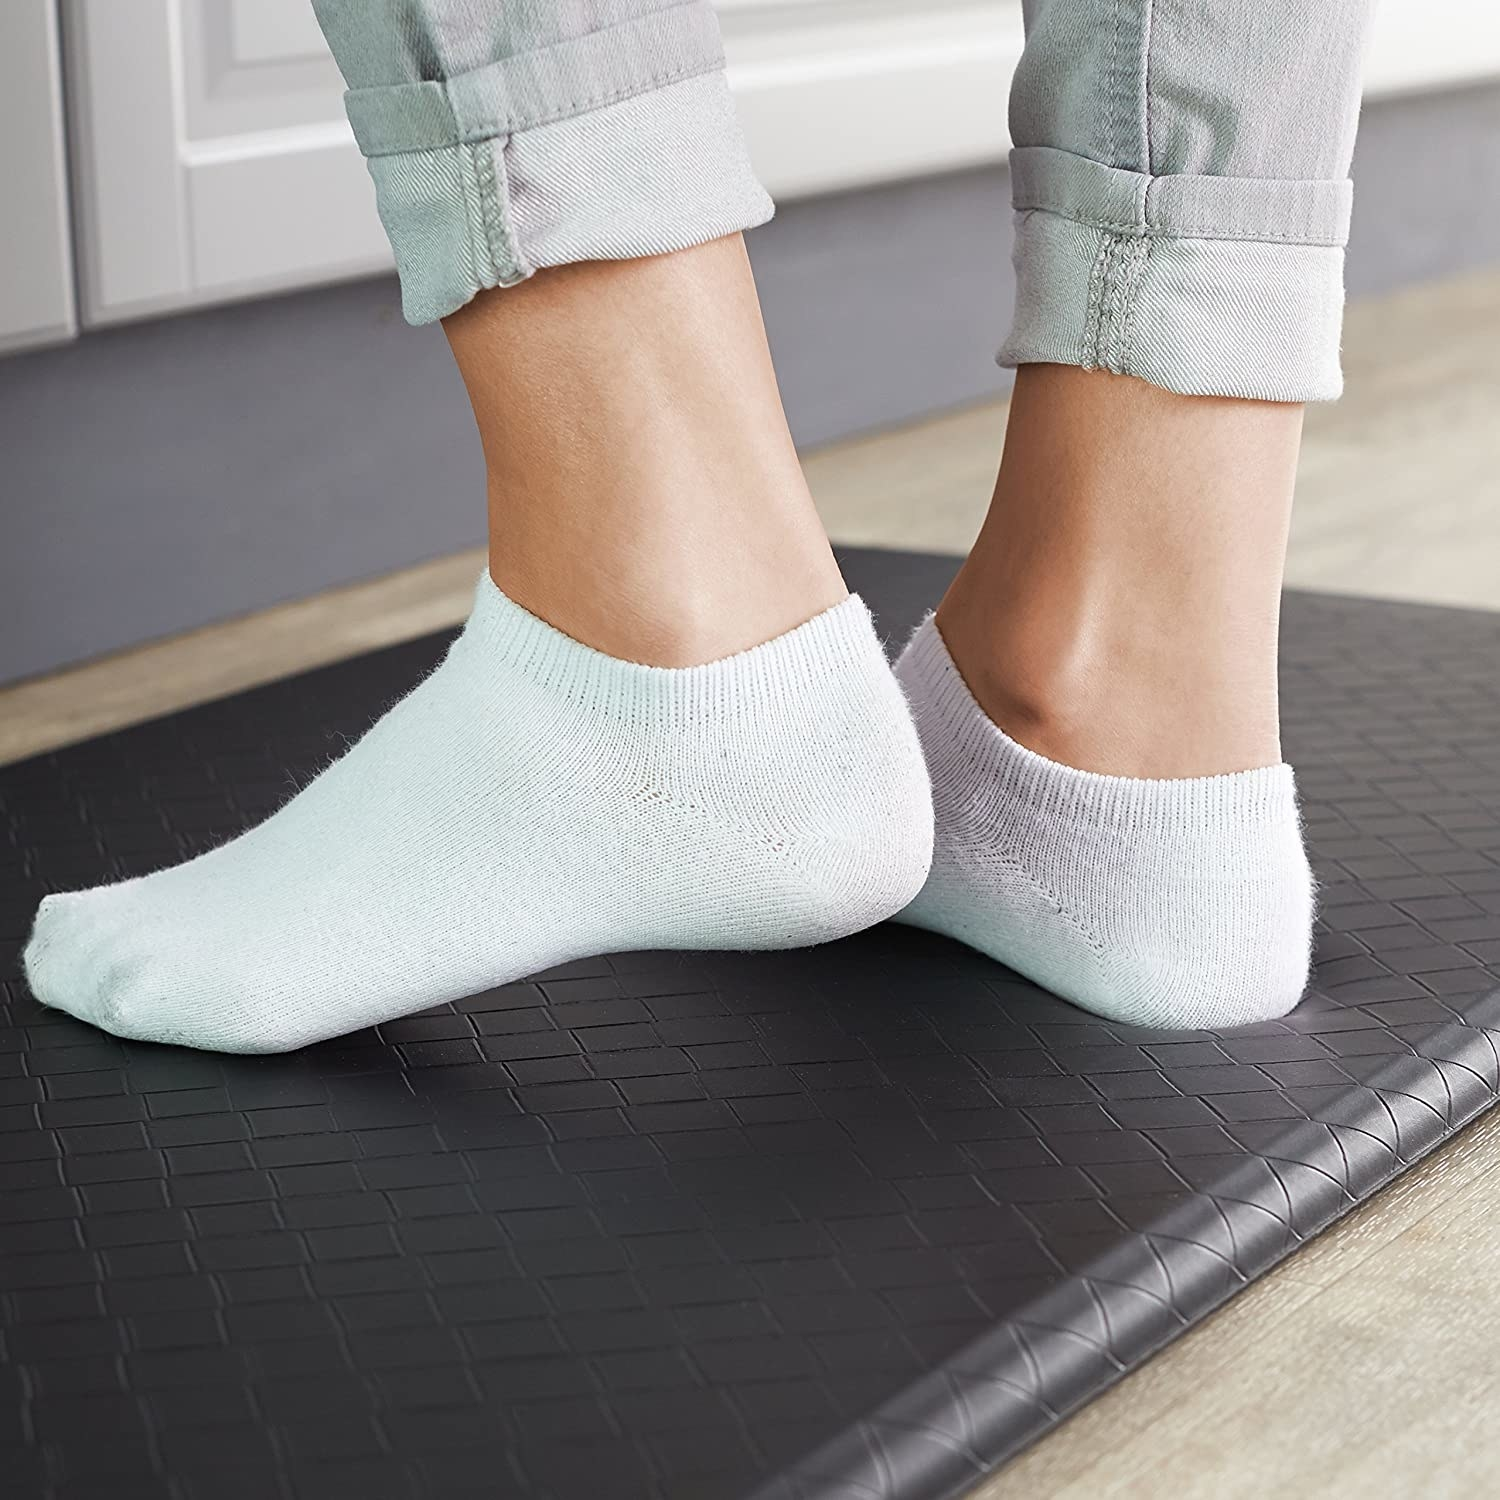 A person standing on a cushy mat in their kitchen